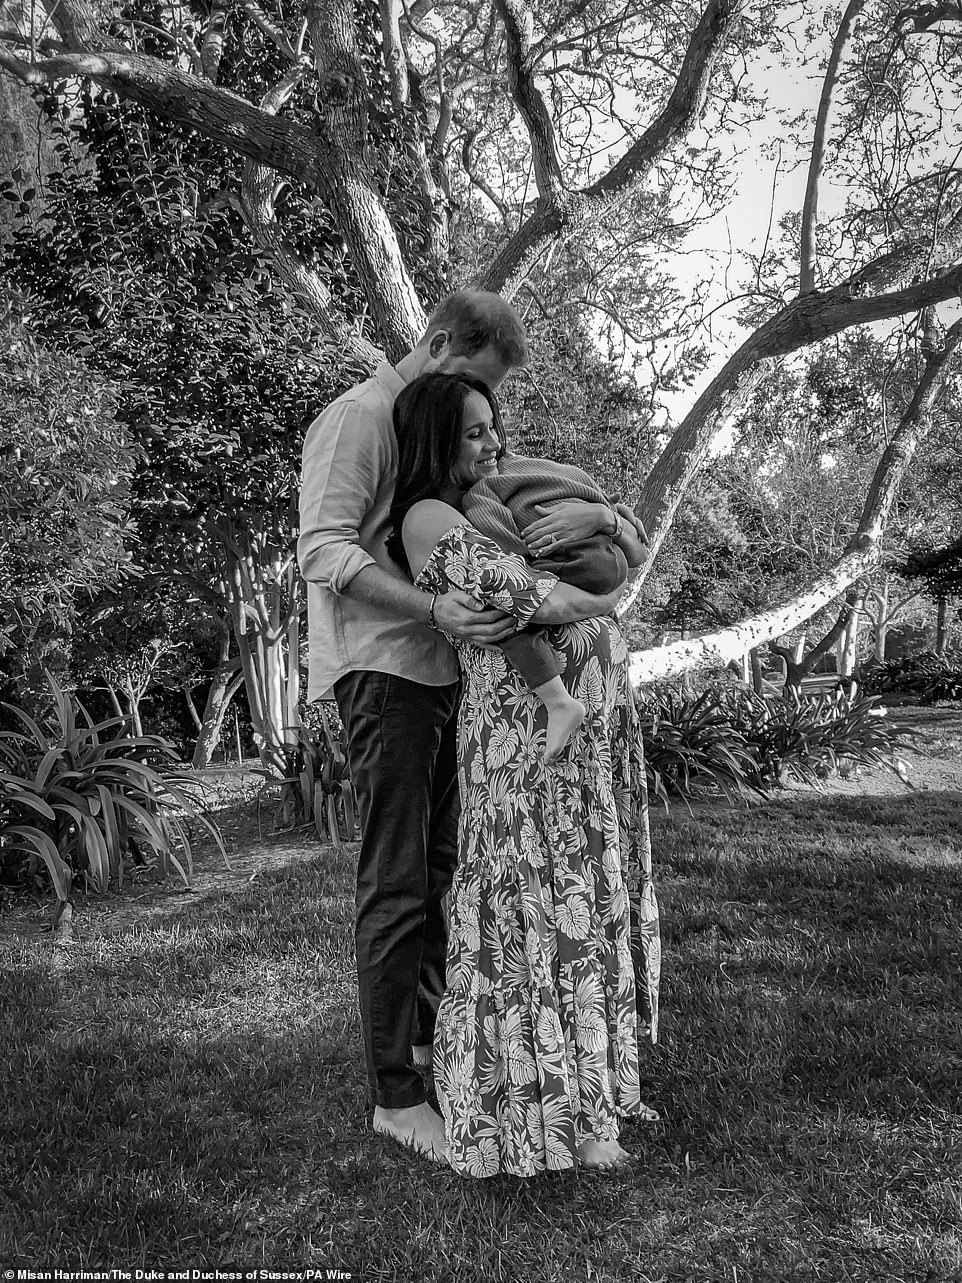 The Duke and Duchess of Sussex released this black and white Instagram photo of them cradling Archie hours after their bombshell interview with Oprah aired